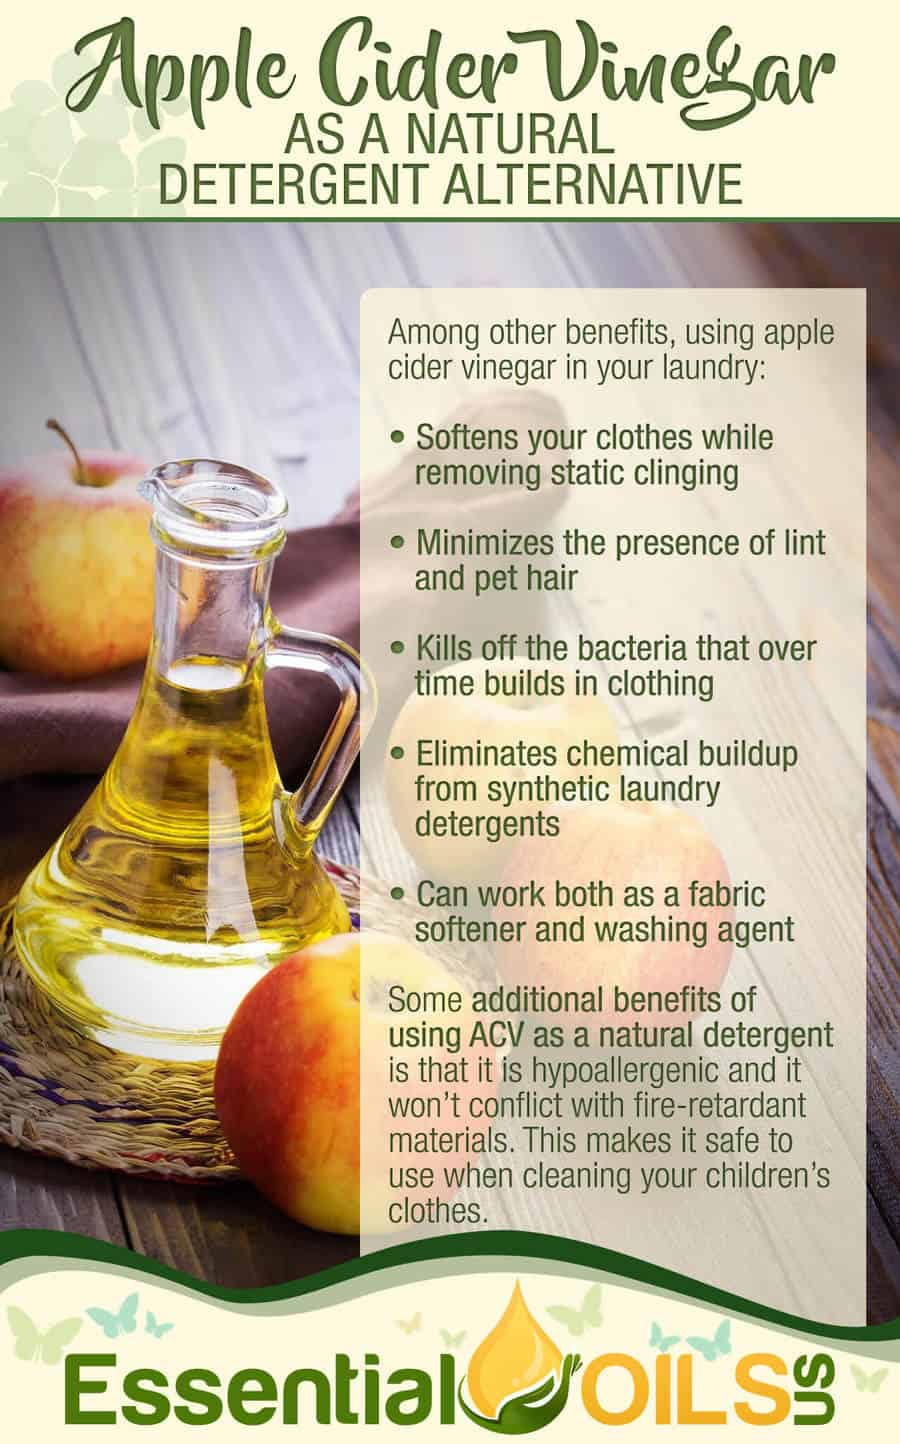 Apple Cider Vinegar in Your Laundry, Why?